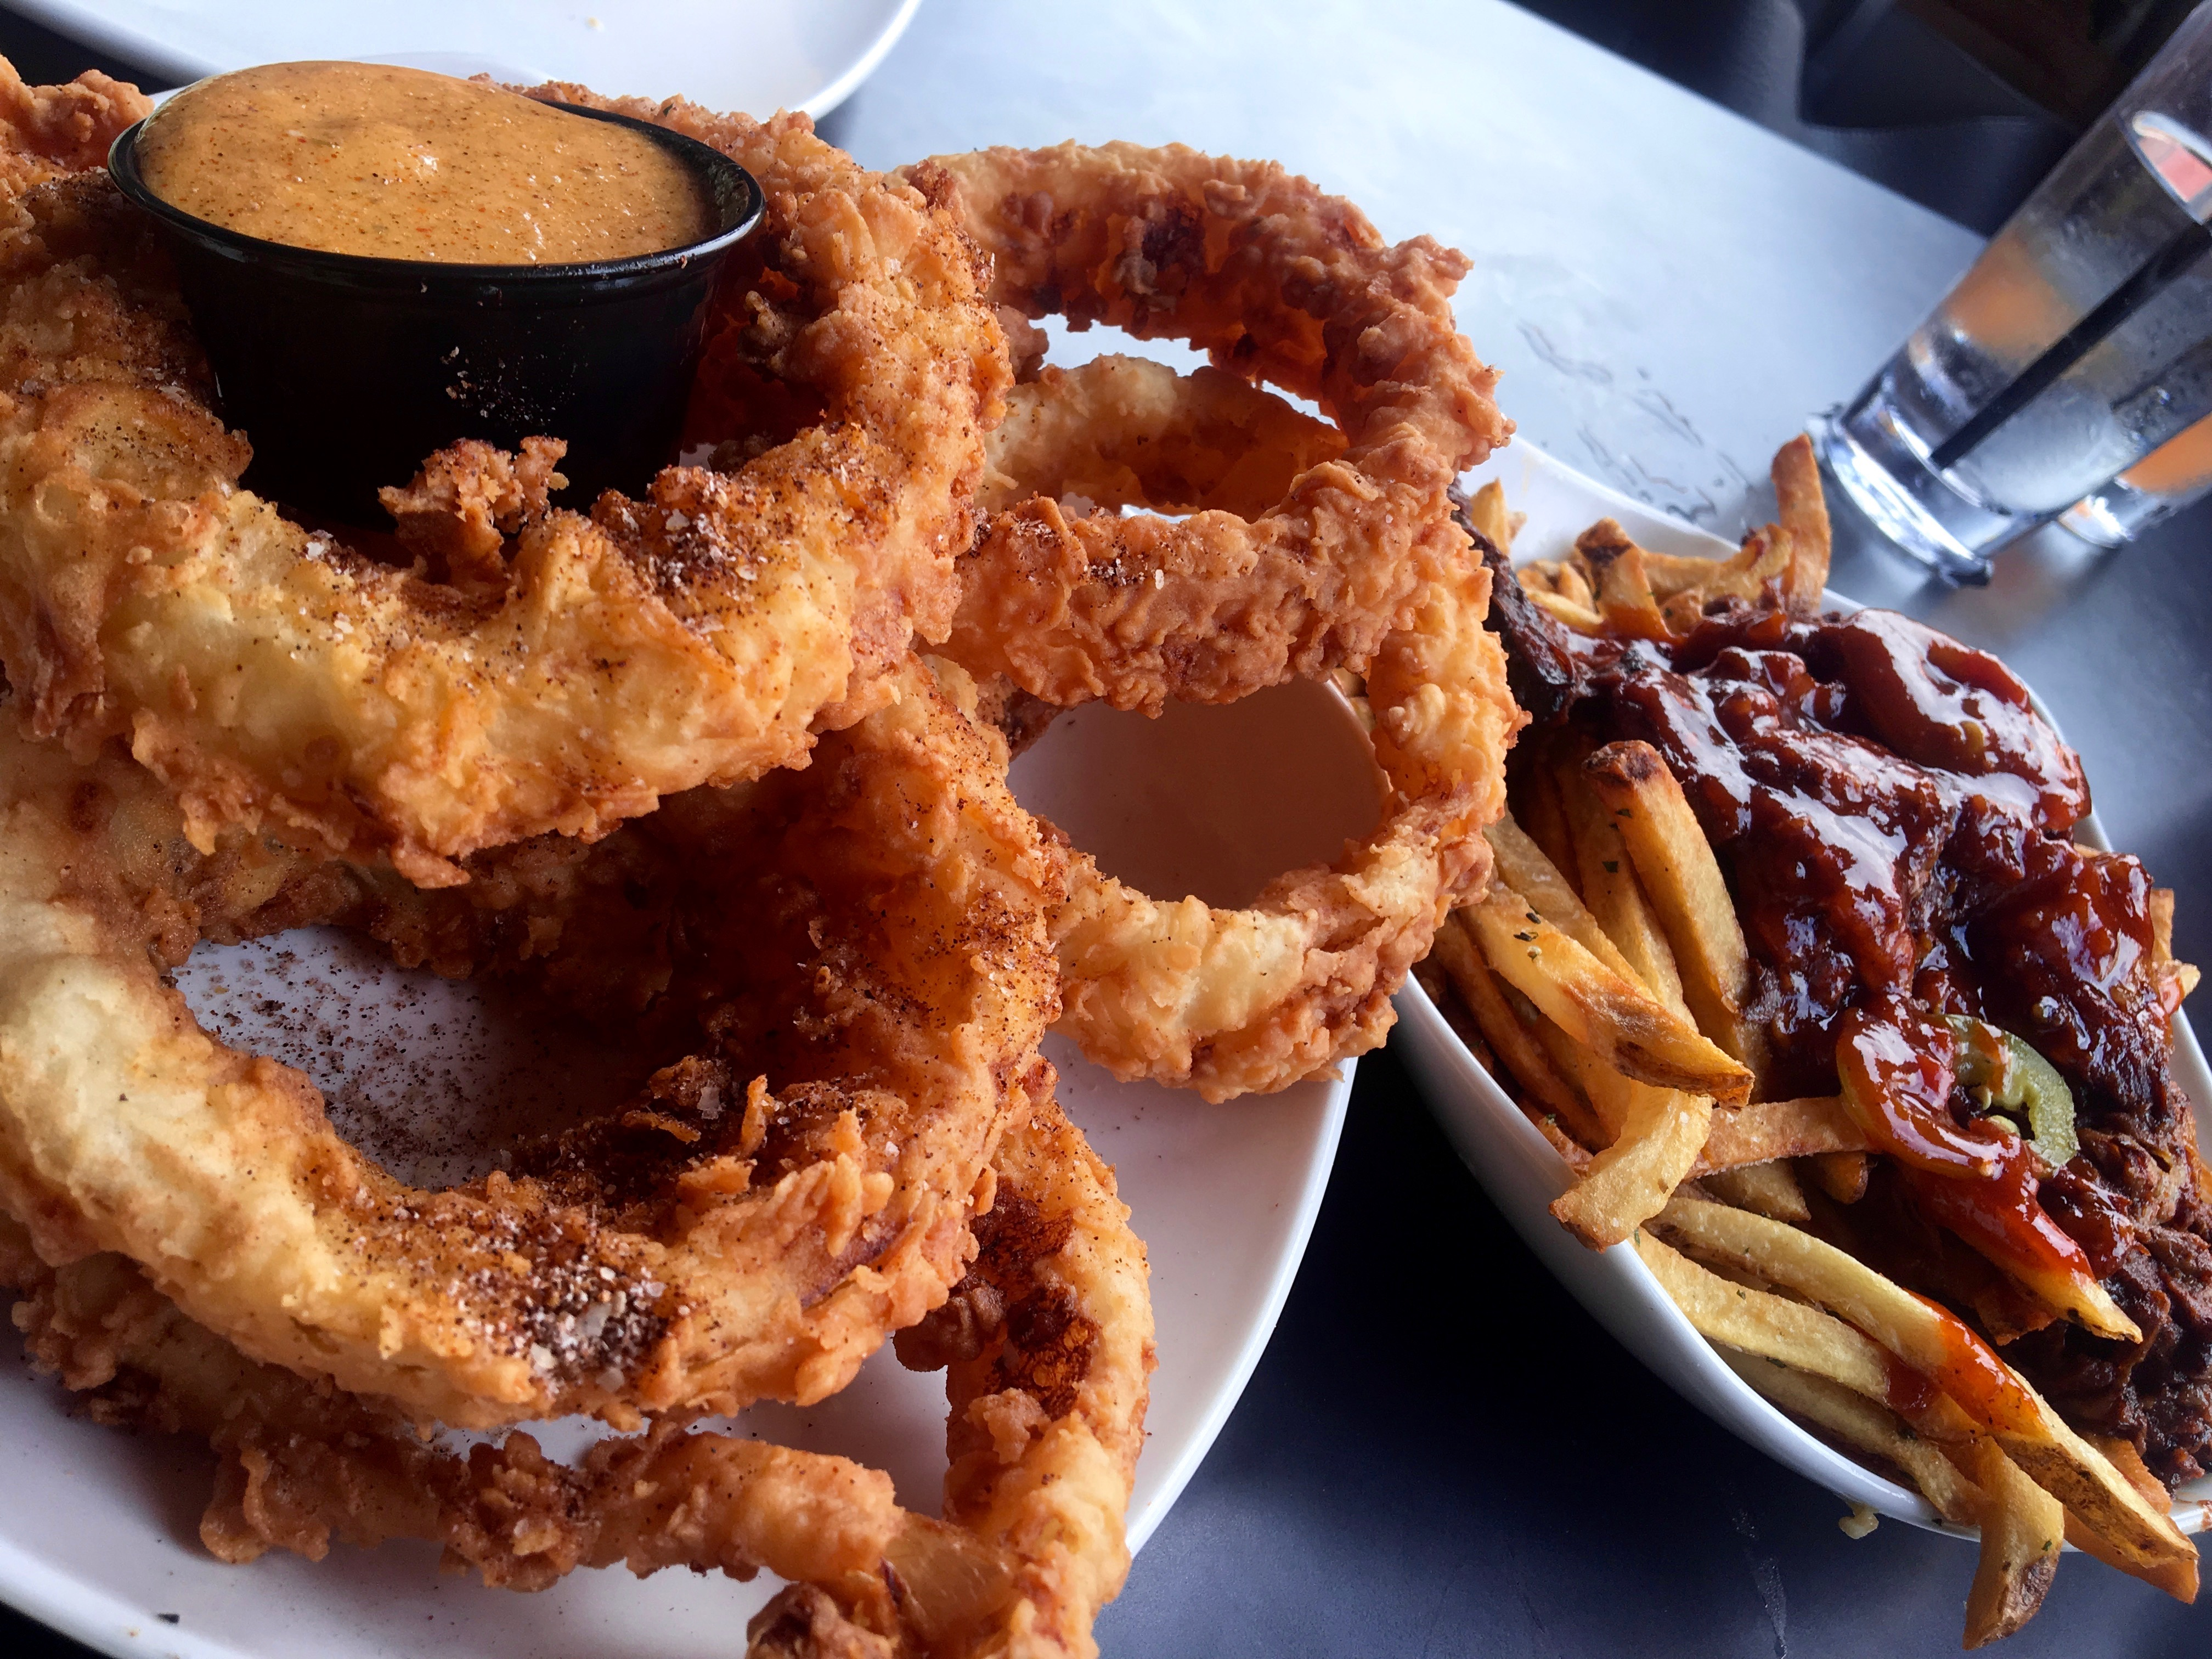 Onion rings and brisket fries